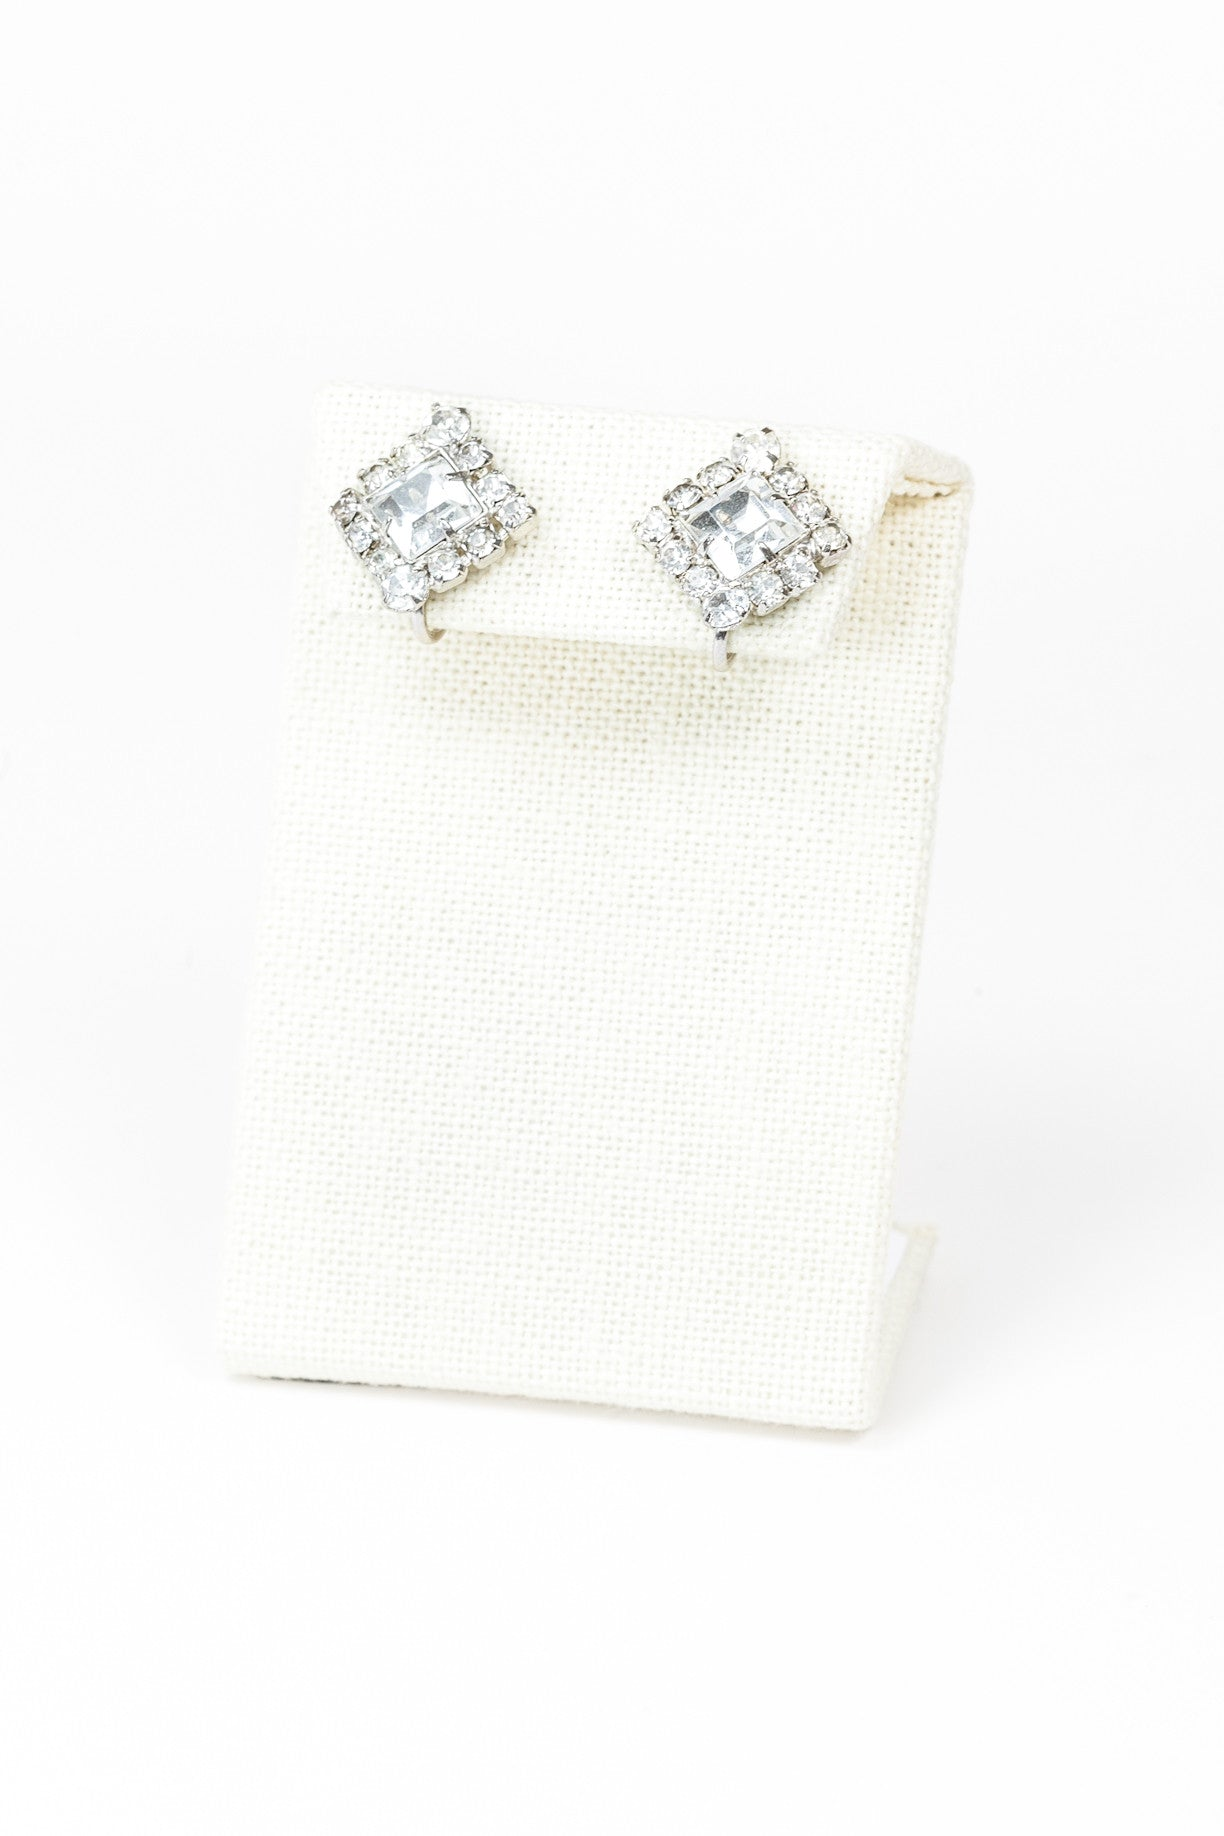 60's__Vintage__Classic Diamond Rhinestone Earrings